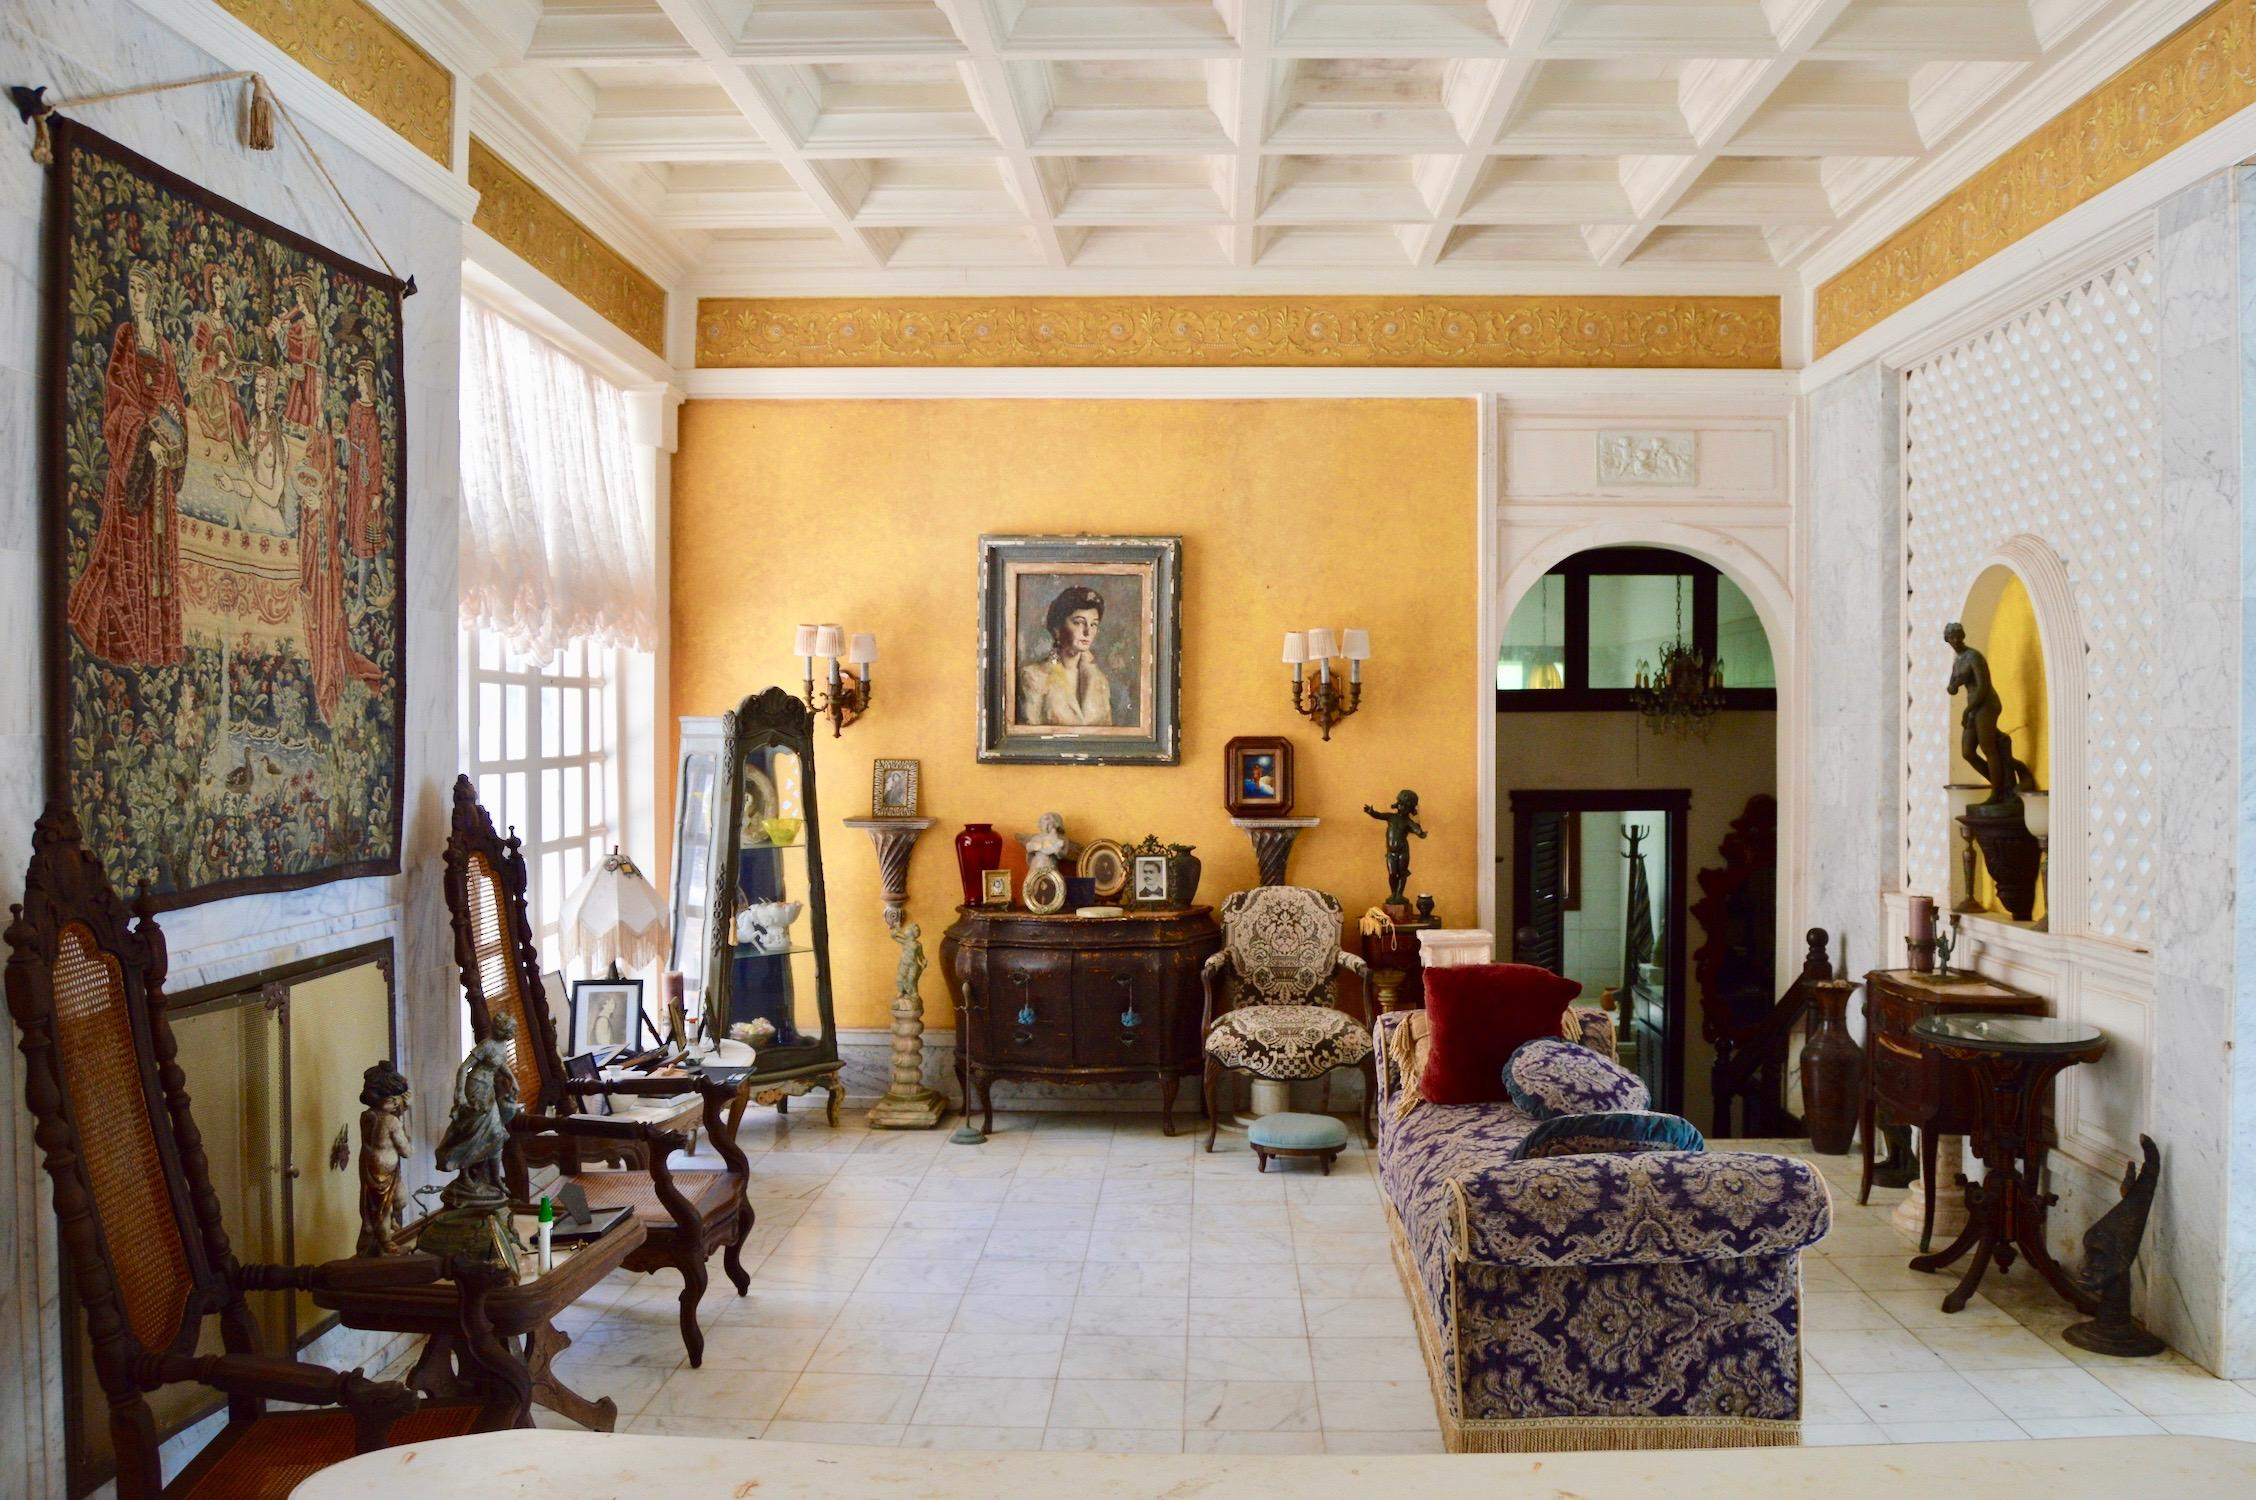 Living room of main house